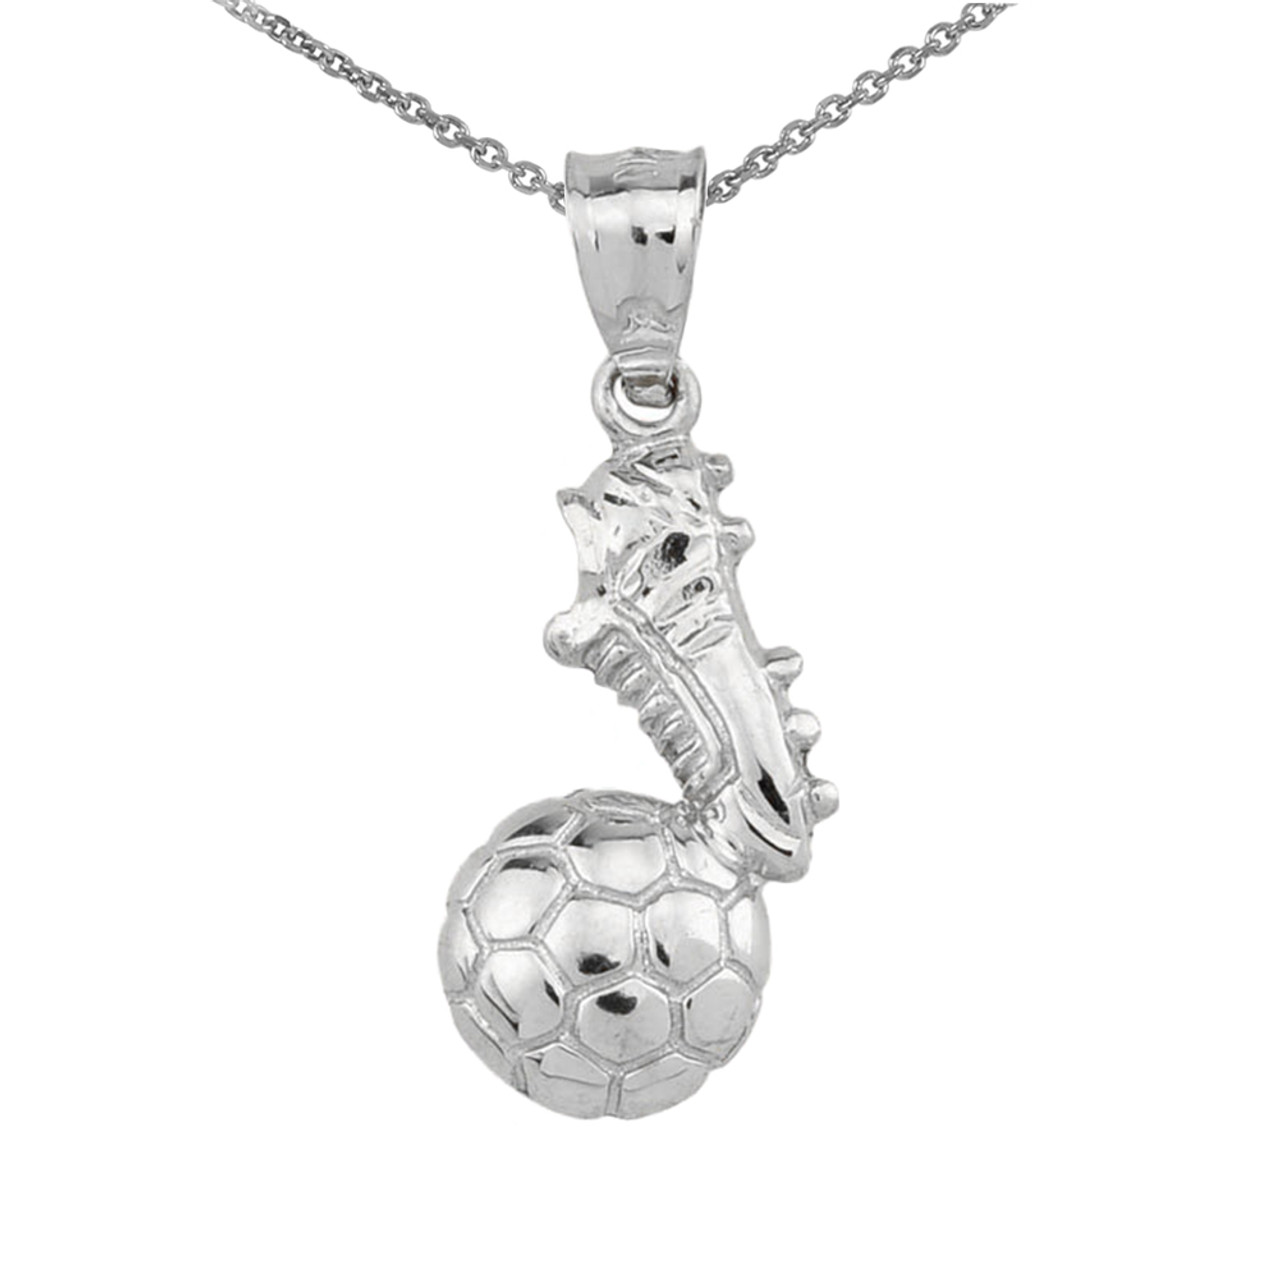 820703b93 925 Sterling Silver Soccer Ball With Shoe Charm Pendant Necklace